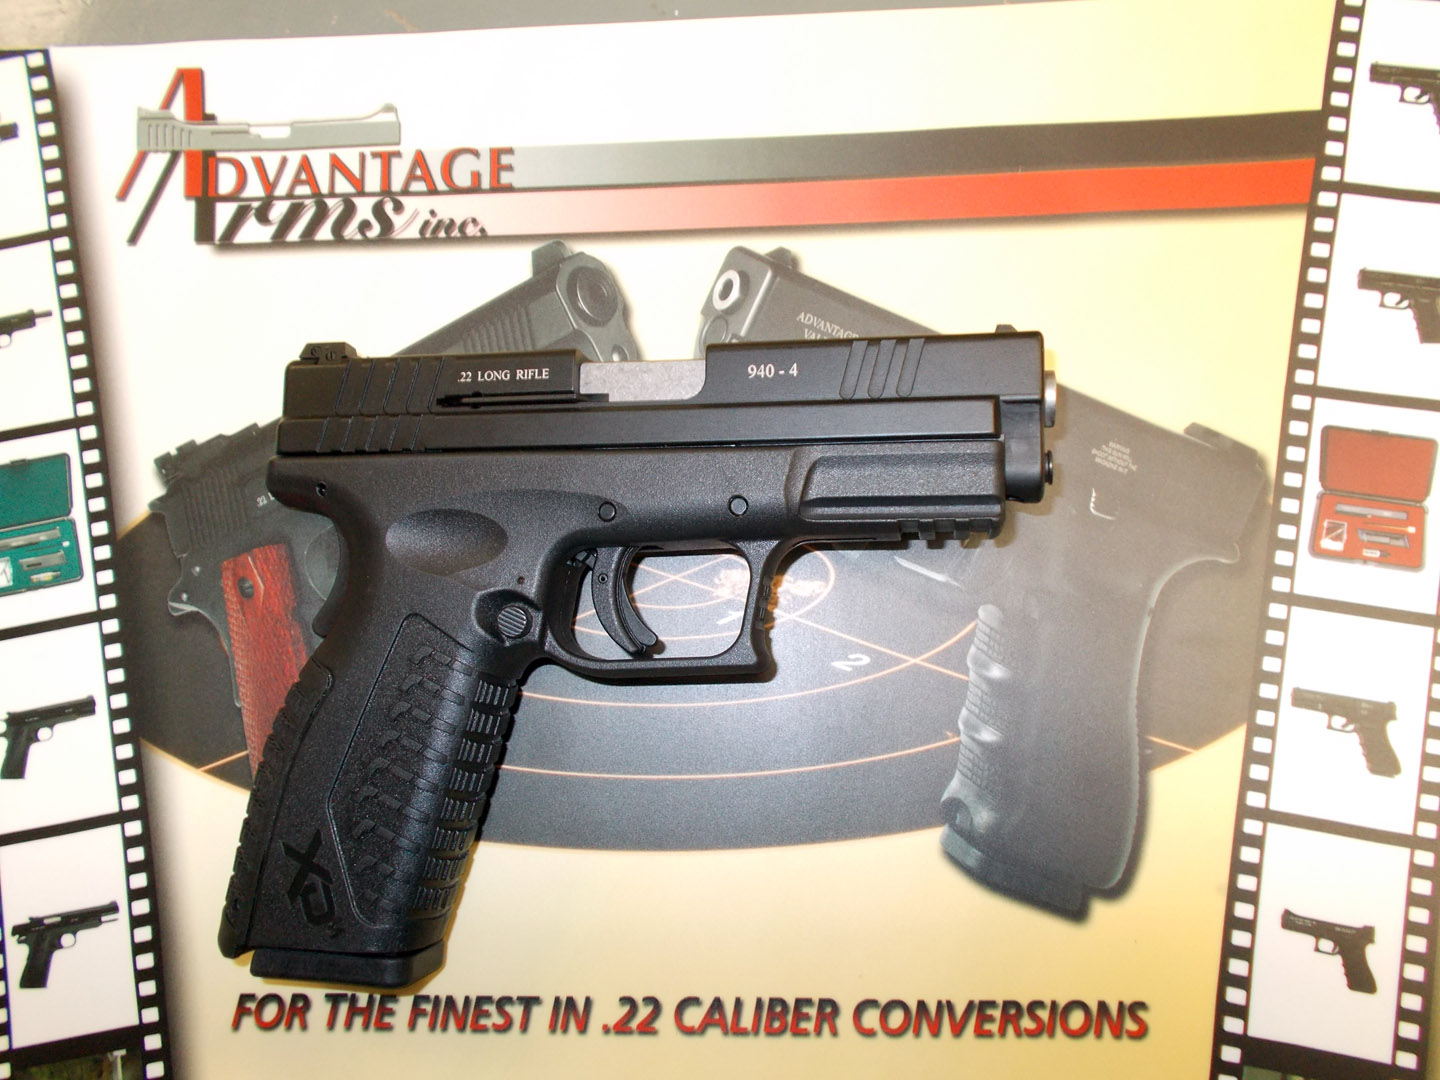 Advantage Arms XDM 22LR Conversion Prototype.